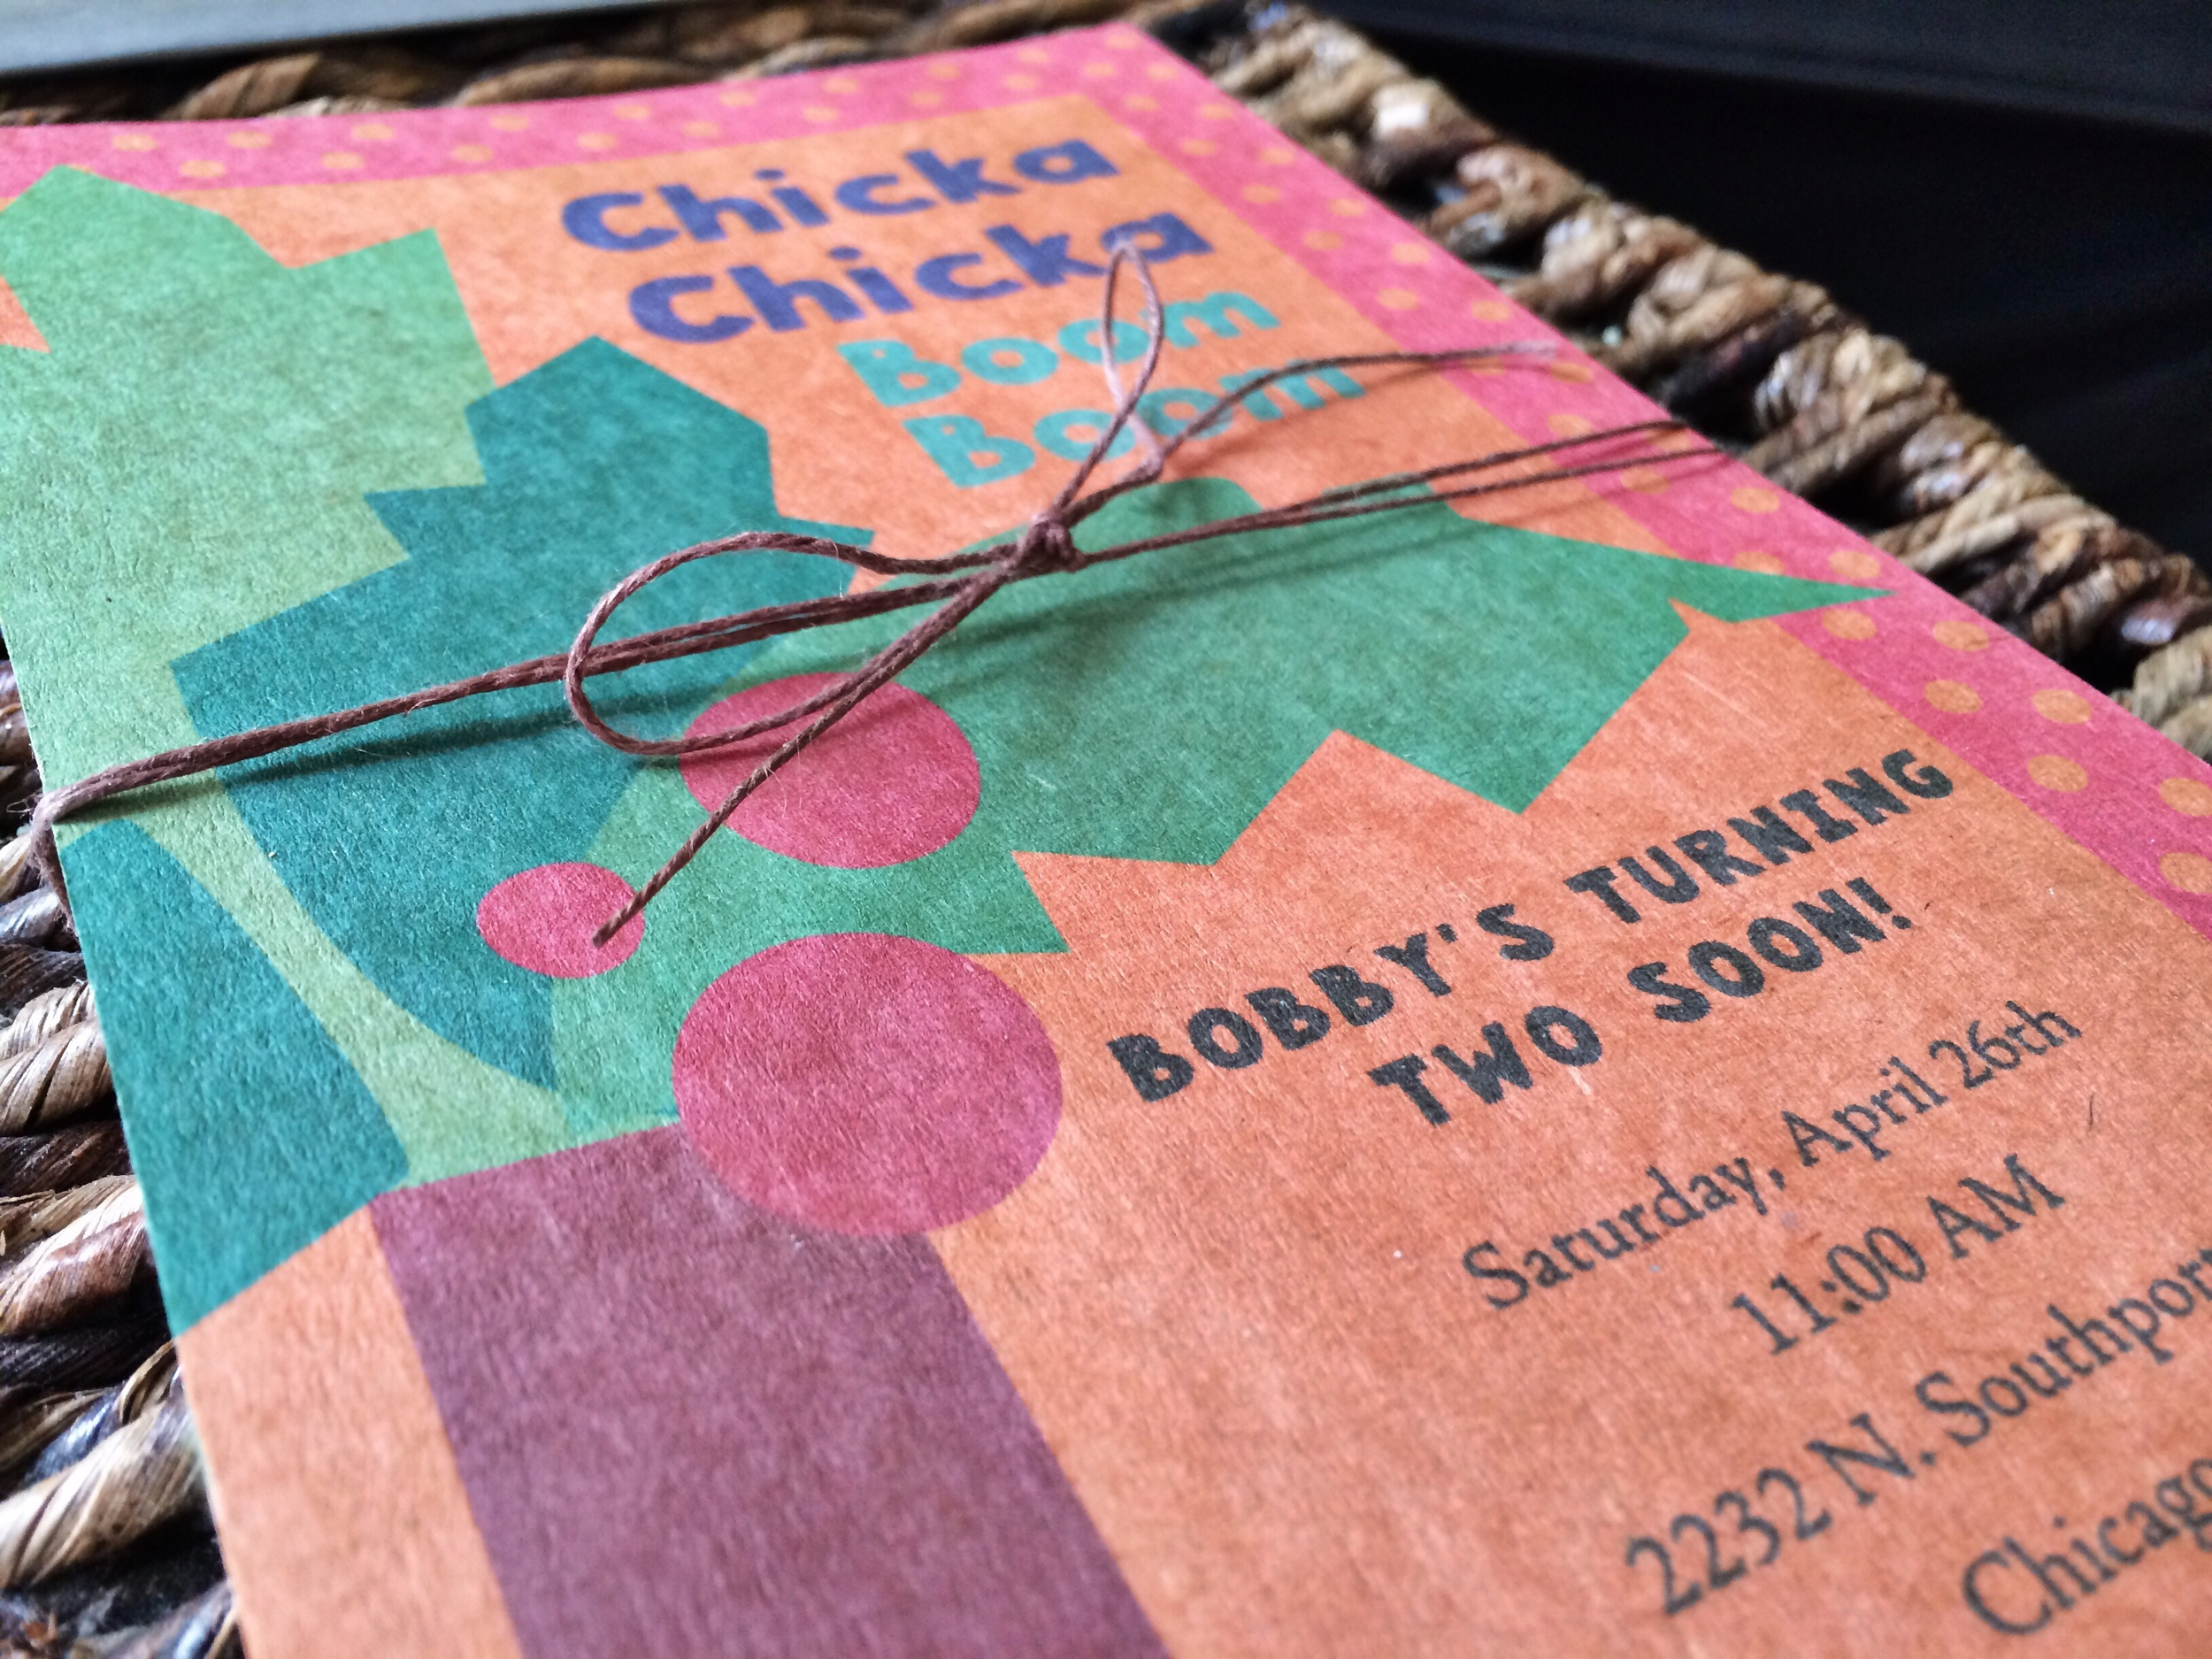 BSAZ CREATES | CHICKA CHICKA BOOM BOOM PARTY SNEAK